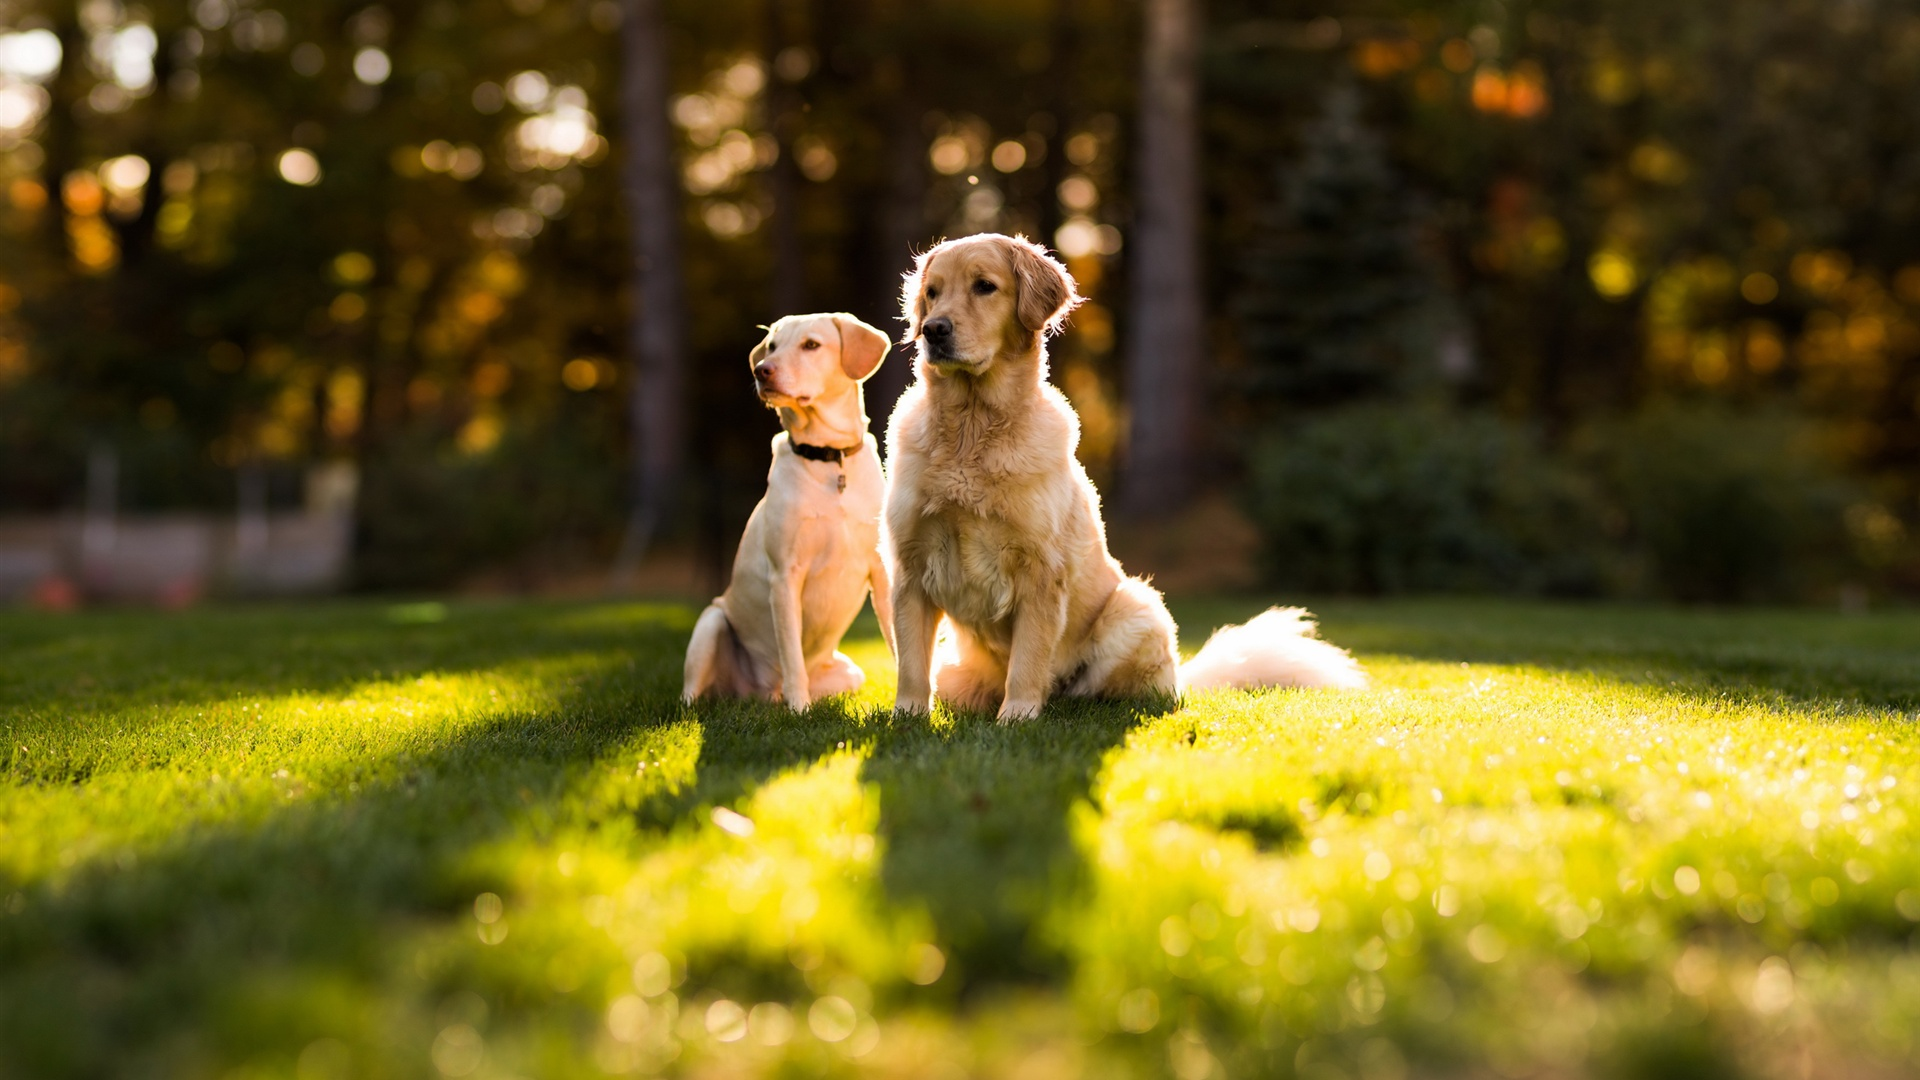 Two-dogs-in-the-sun-on-the-grass_1920x1080.jpg